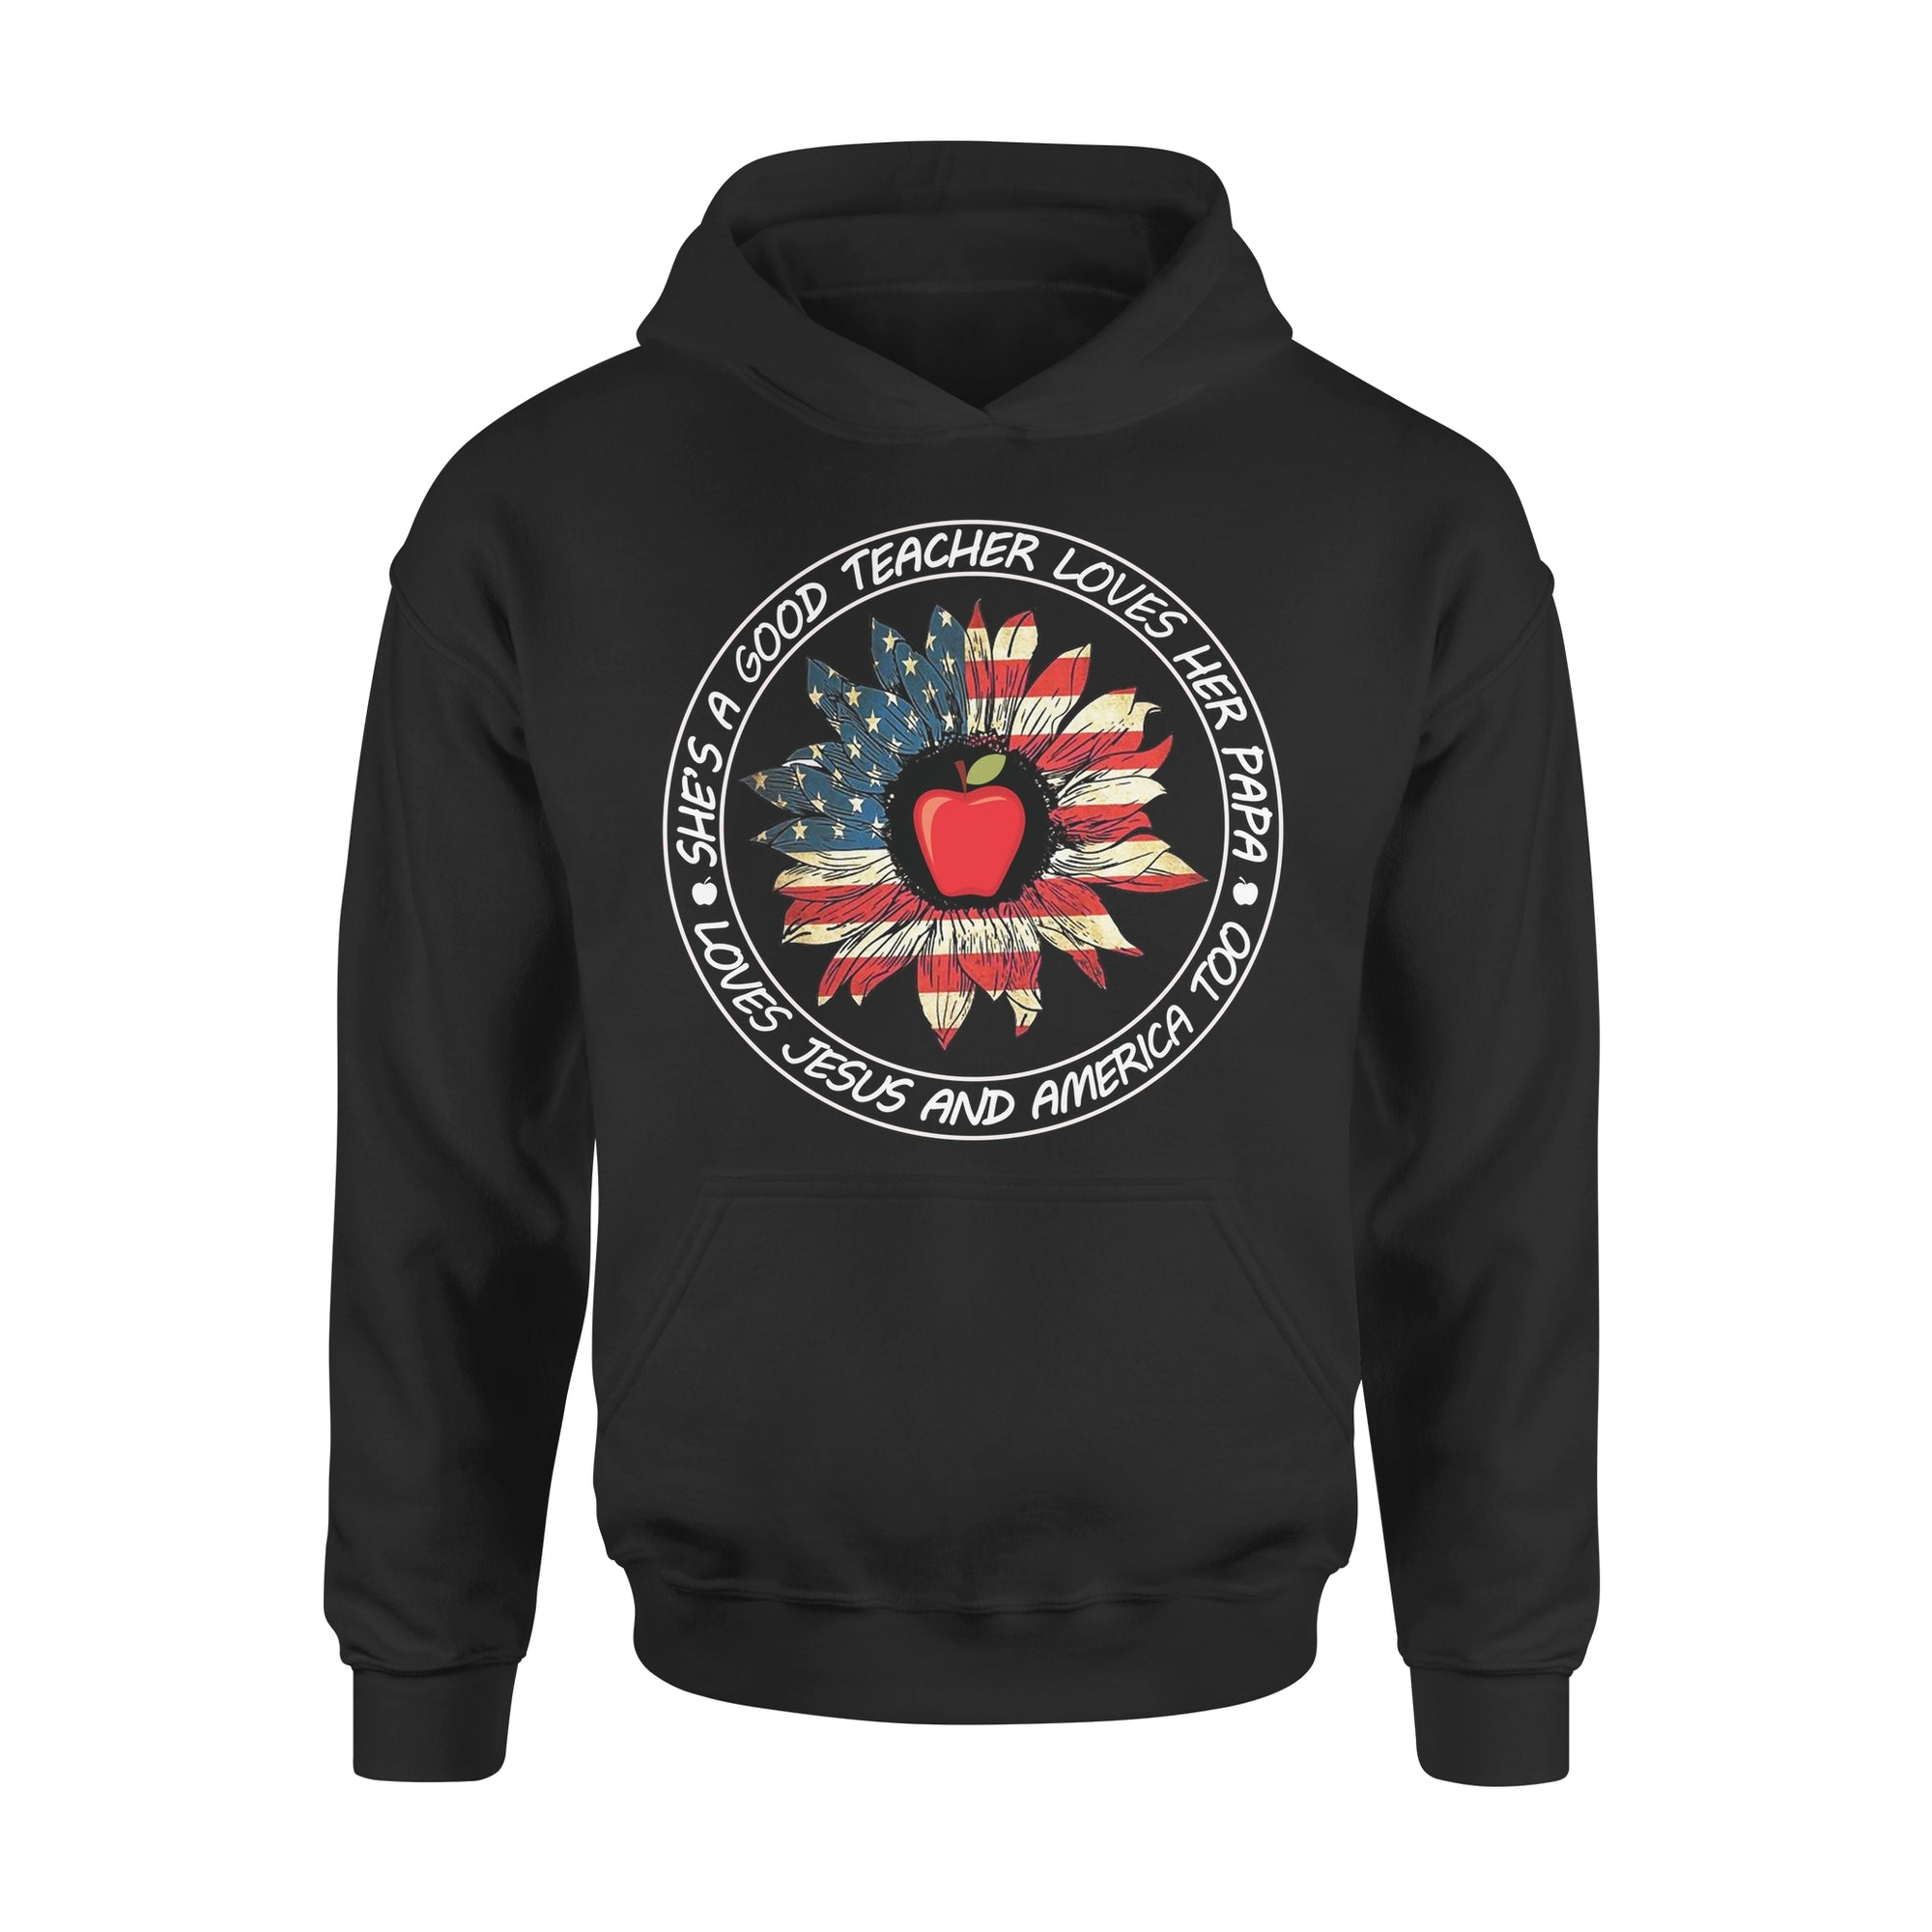 VIRA Premium Hoodie for awesome teachers & dads